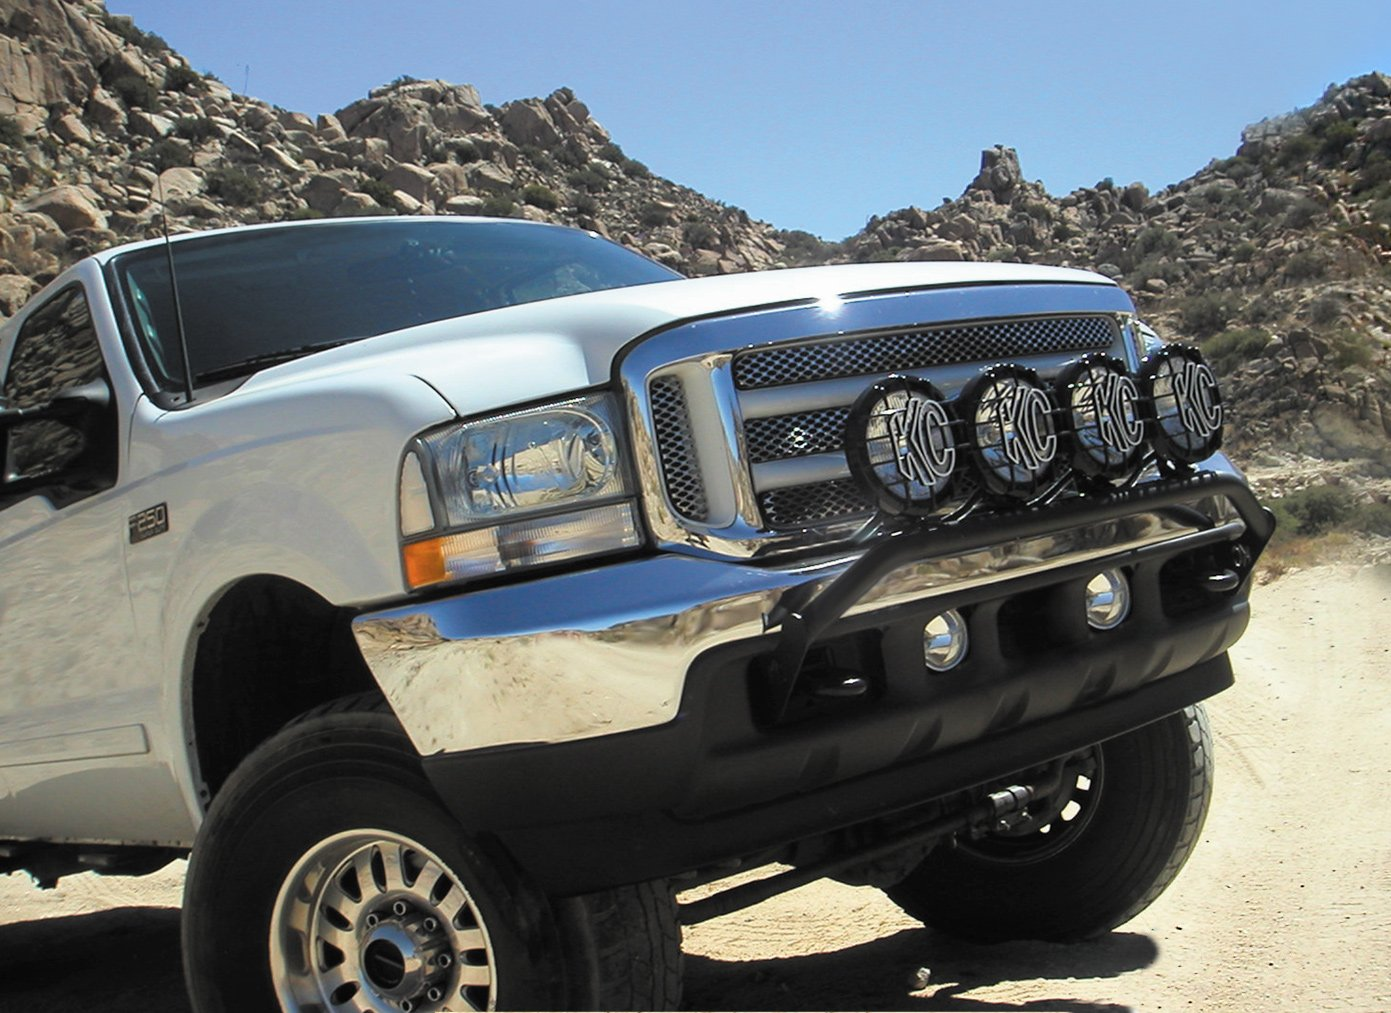 Kc hilites front light bar mozeypictures Image collections